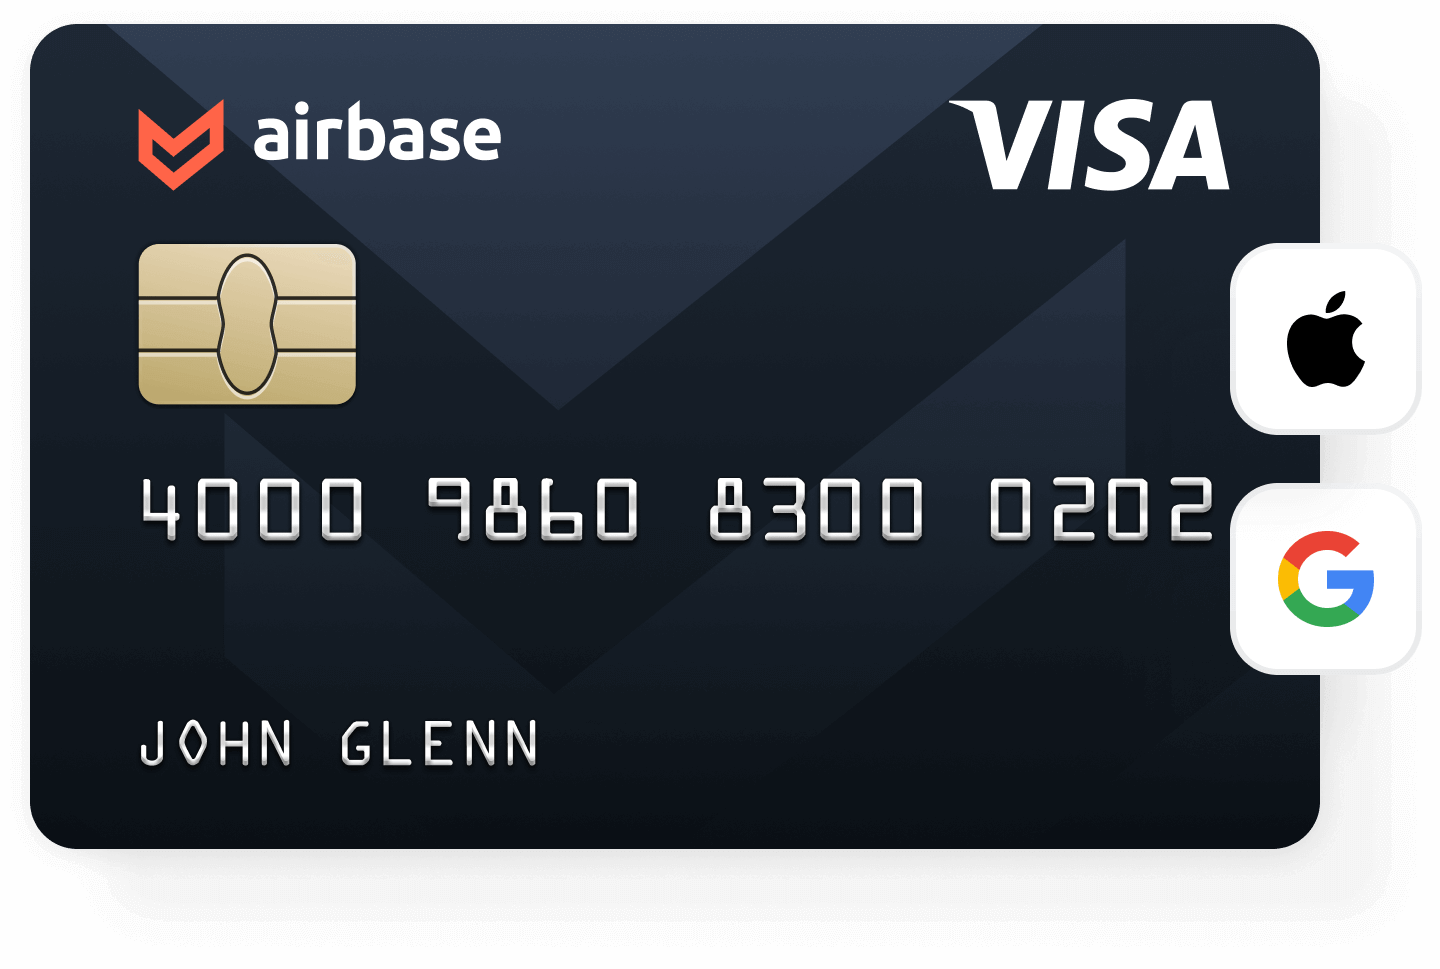 You can add your Airbase card to your digital wallet.